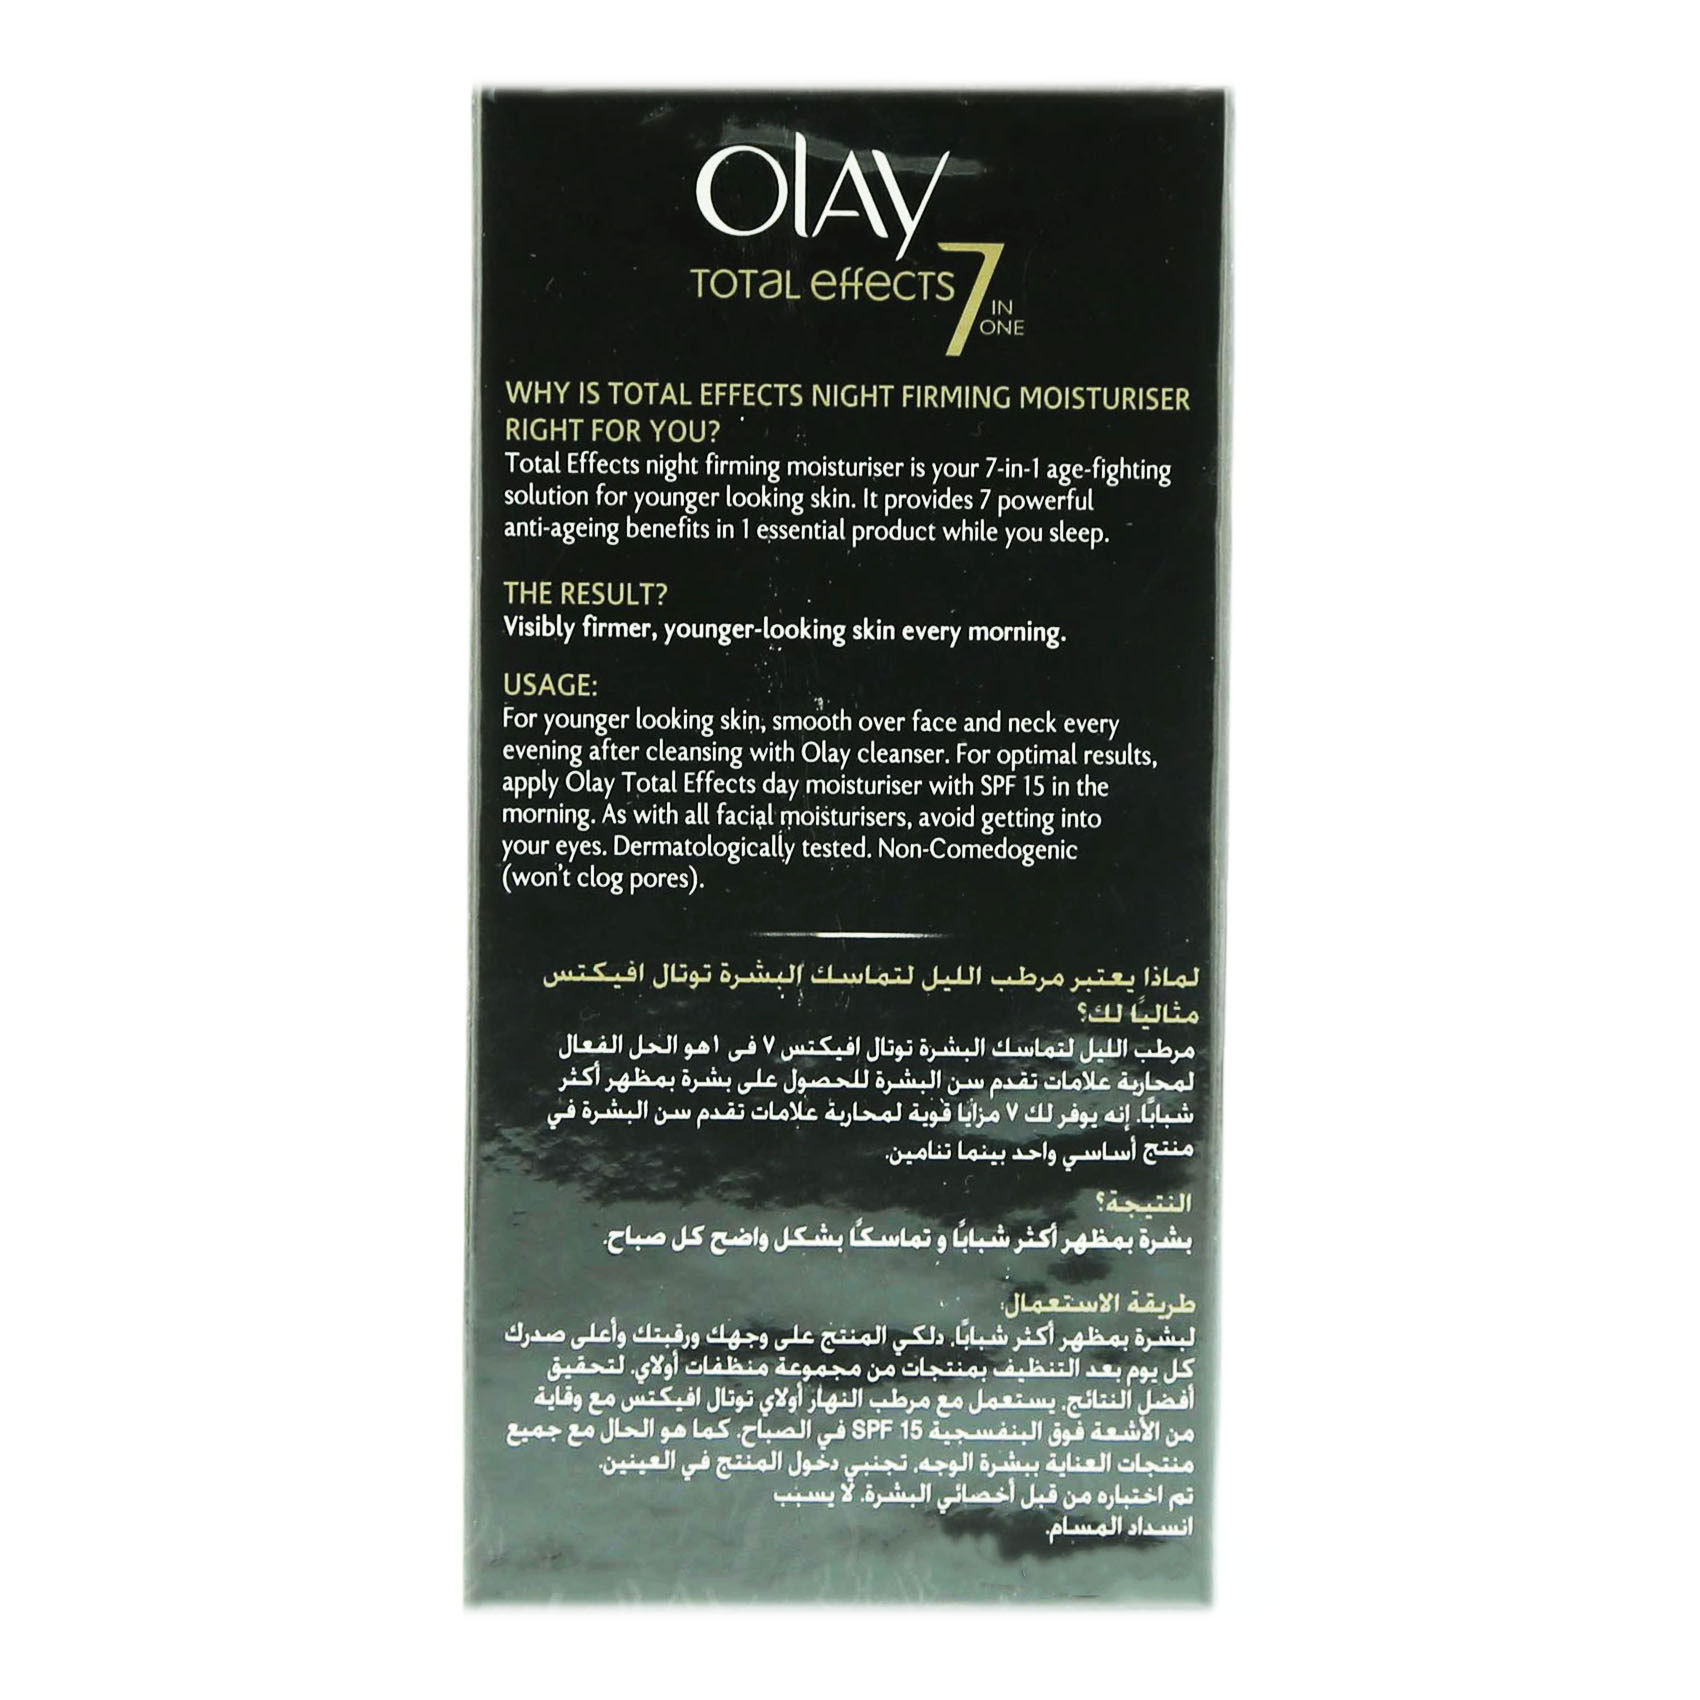 OLAY TOTAL EFFECTS MOIST NIGHT 50M